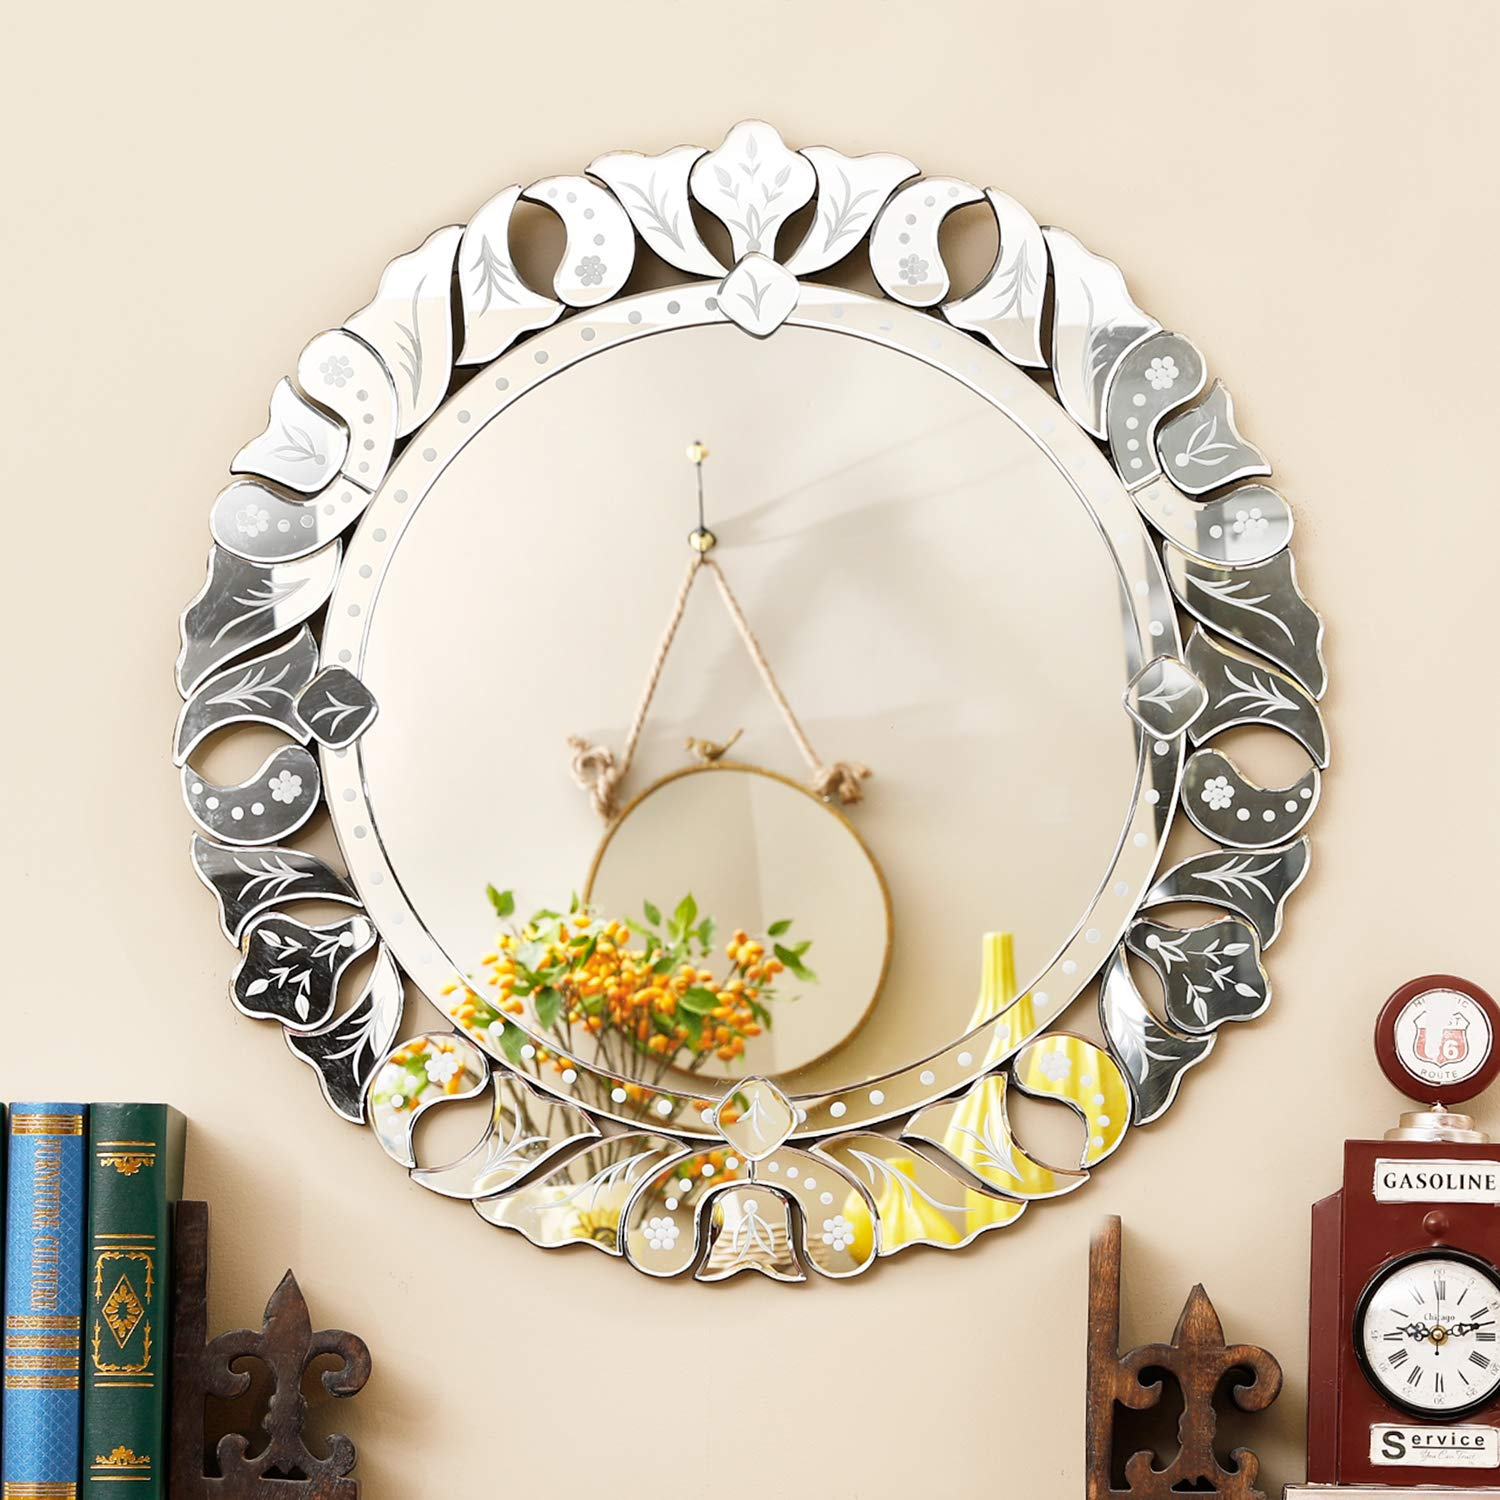 Wall Mirror with a Silver Backed Mirrored Glass Panel Best for Vanity, Bedroom, or Bathroom (31.5''x31.5'') by MX.home